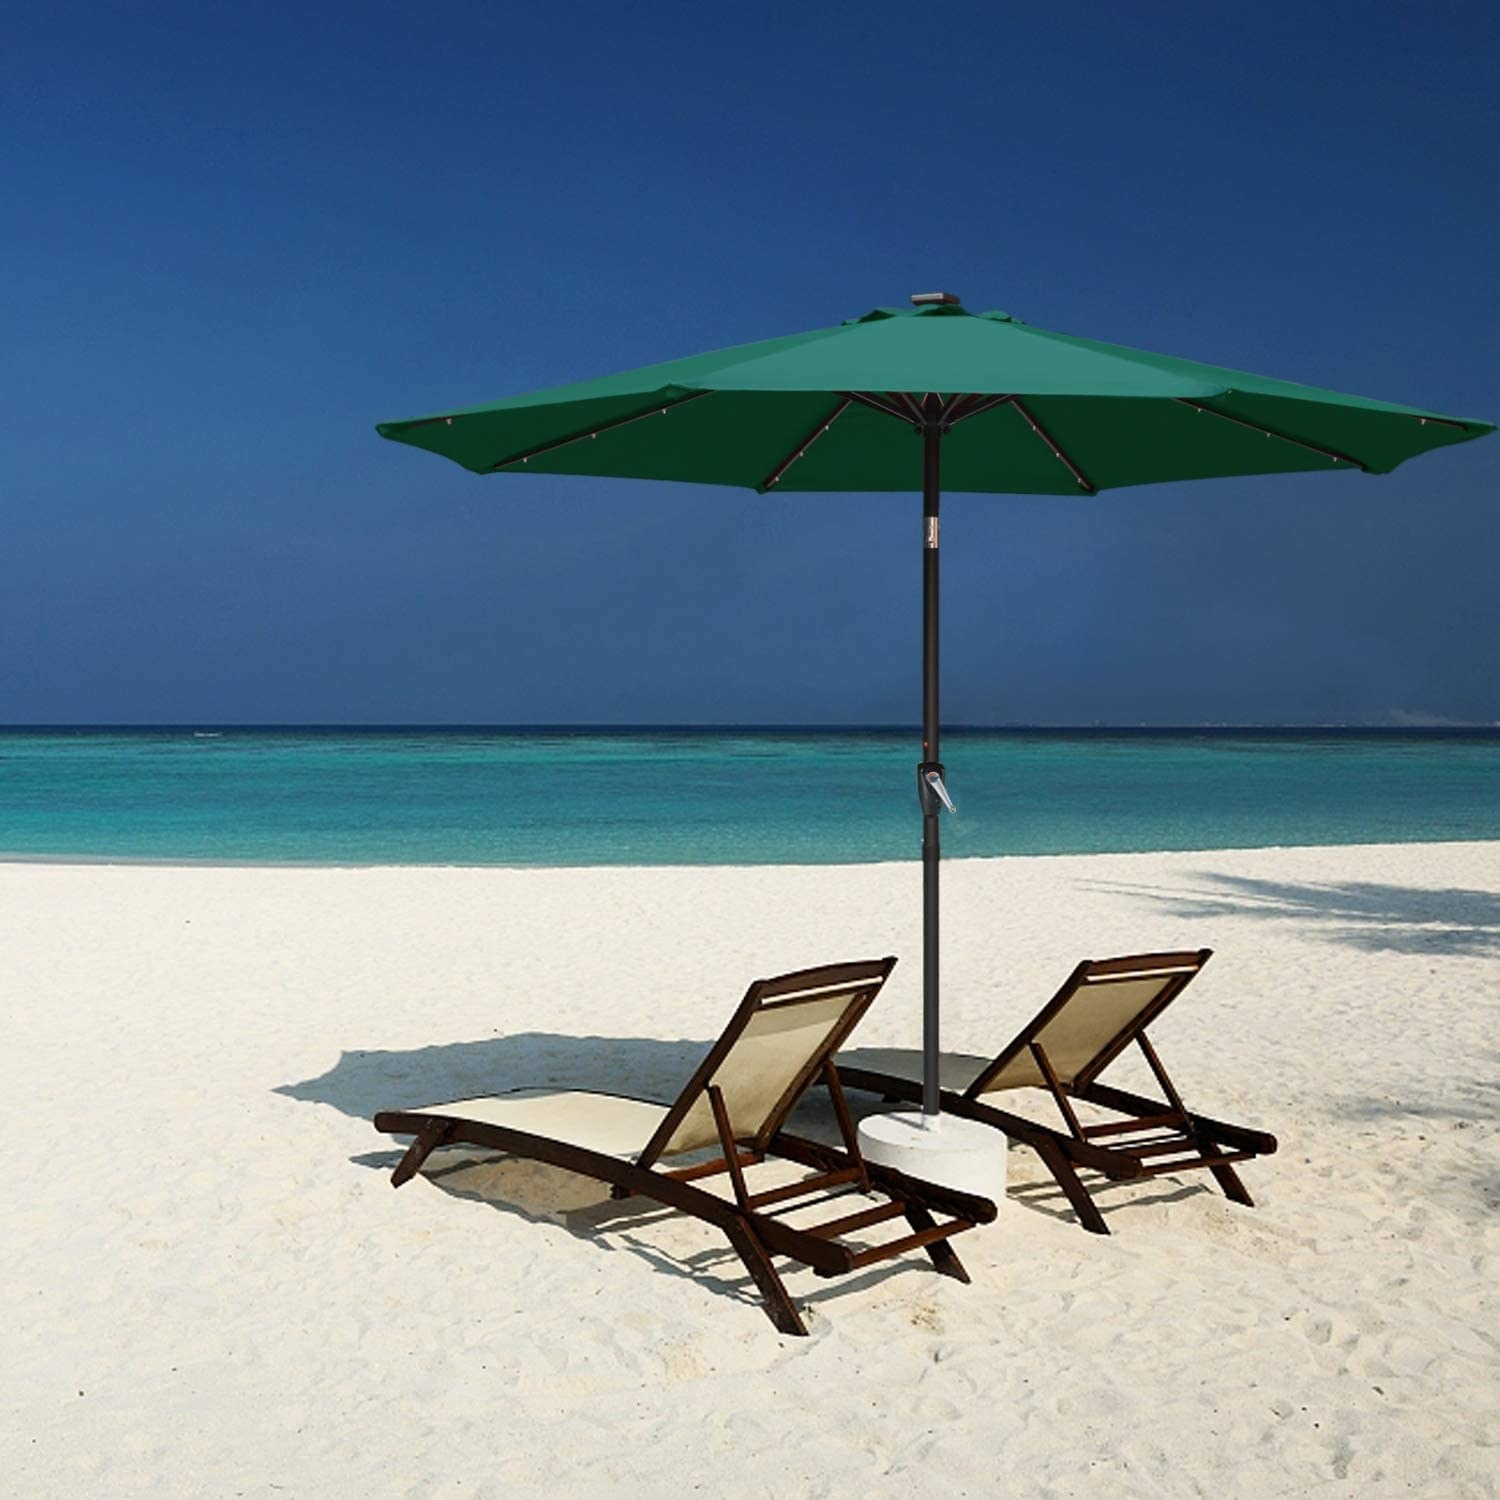 The umbrella over two patio chairs at a beach